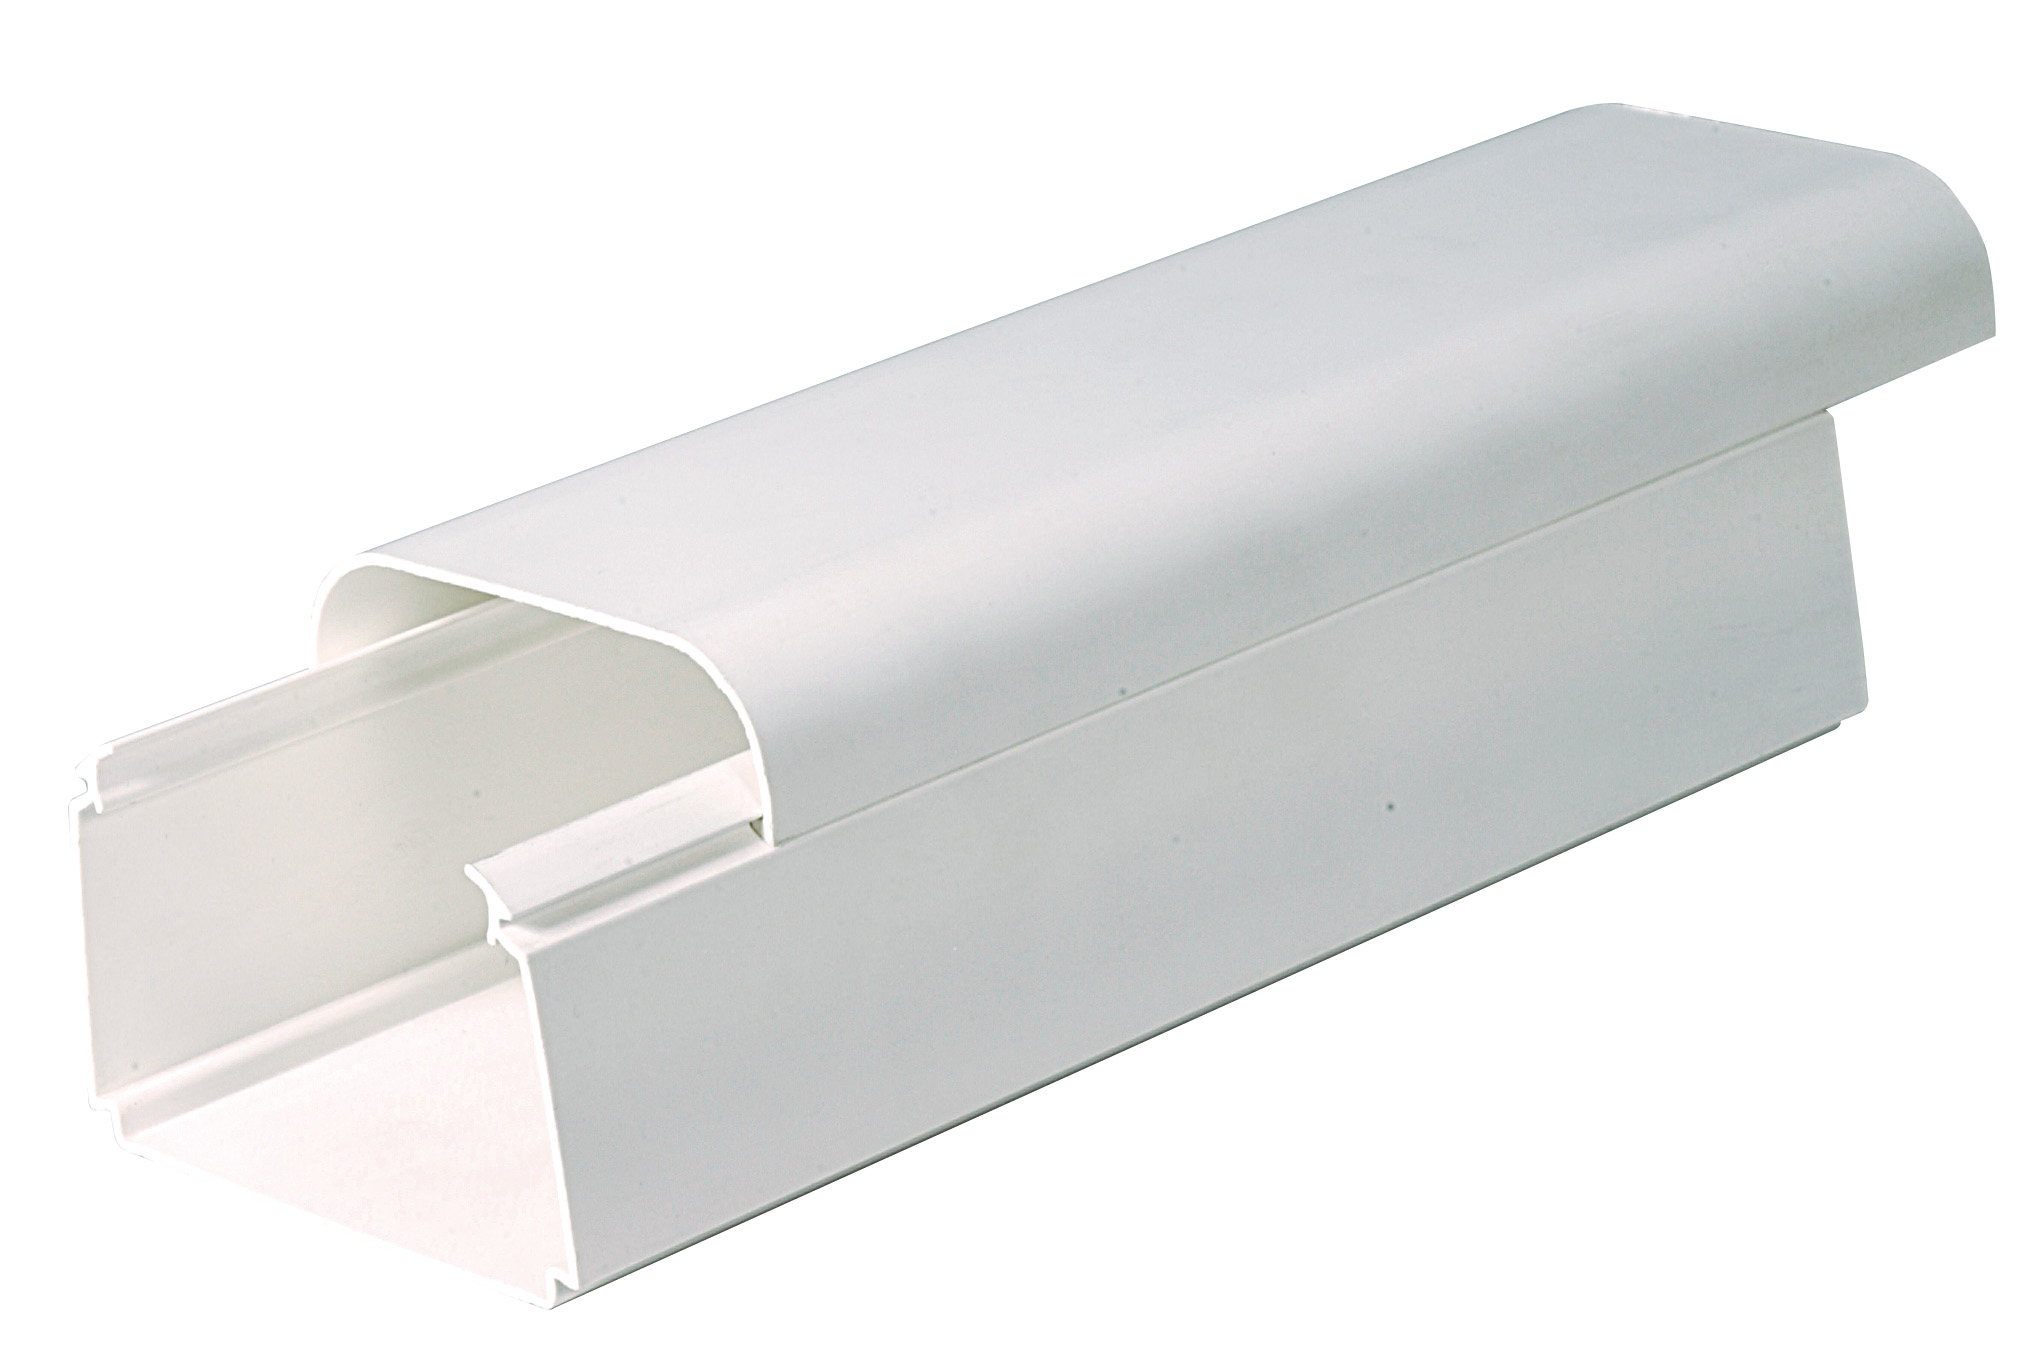 Trunking 110mm x 75mm White